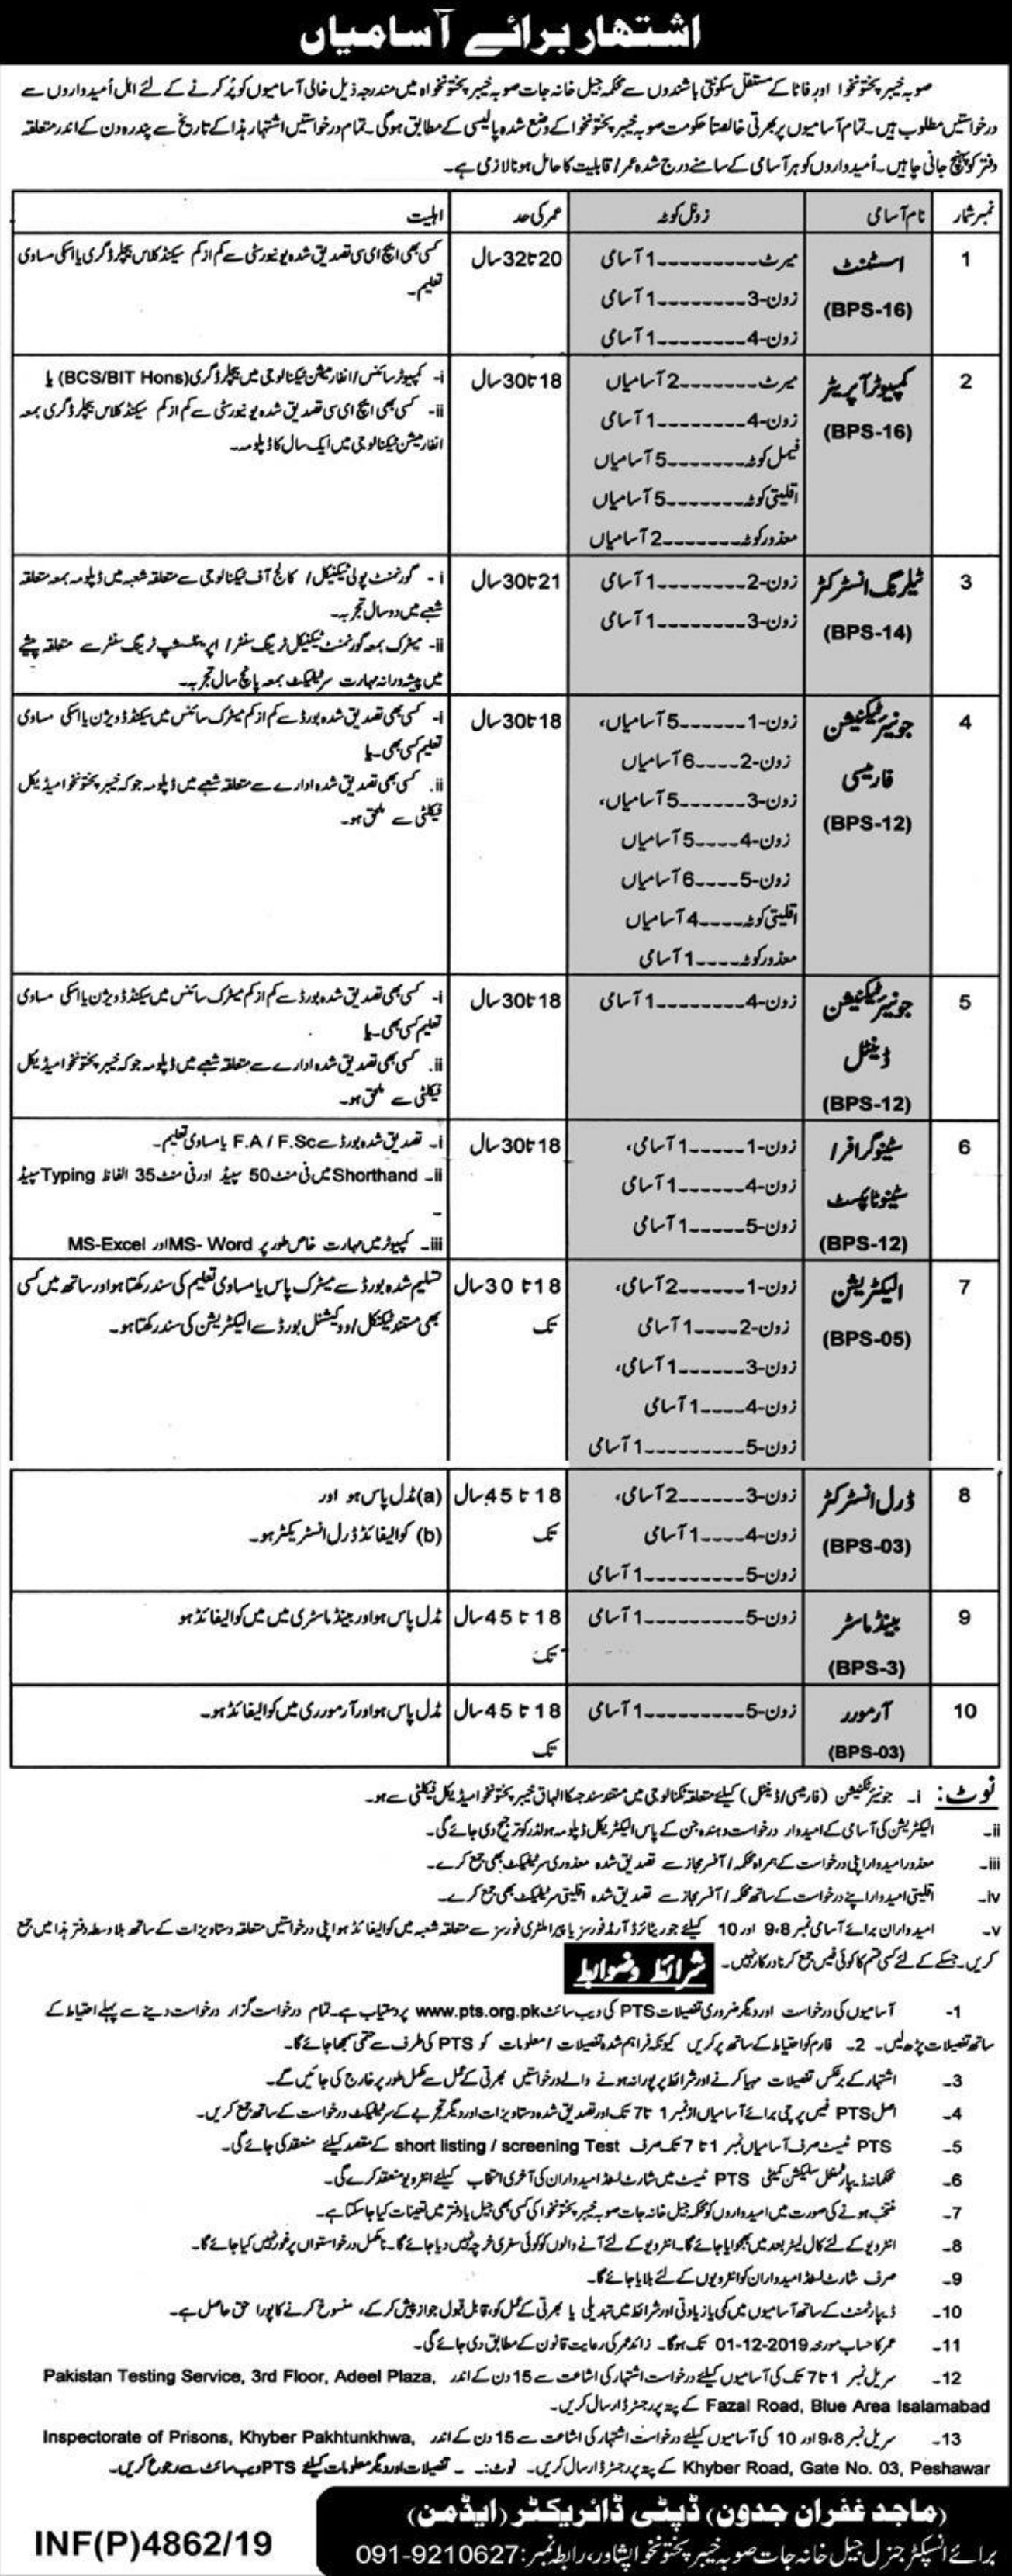 Prison Department KPK Jobs 2019 Apply through PTS